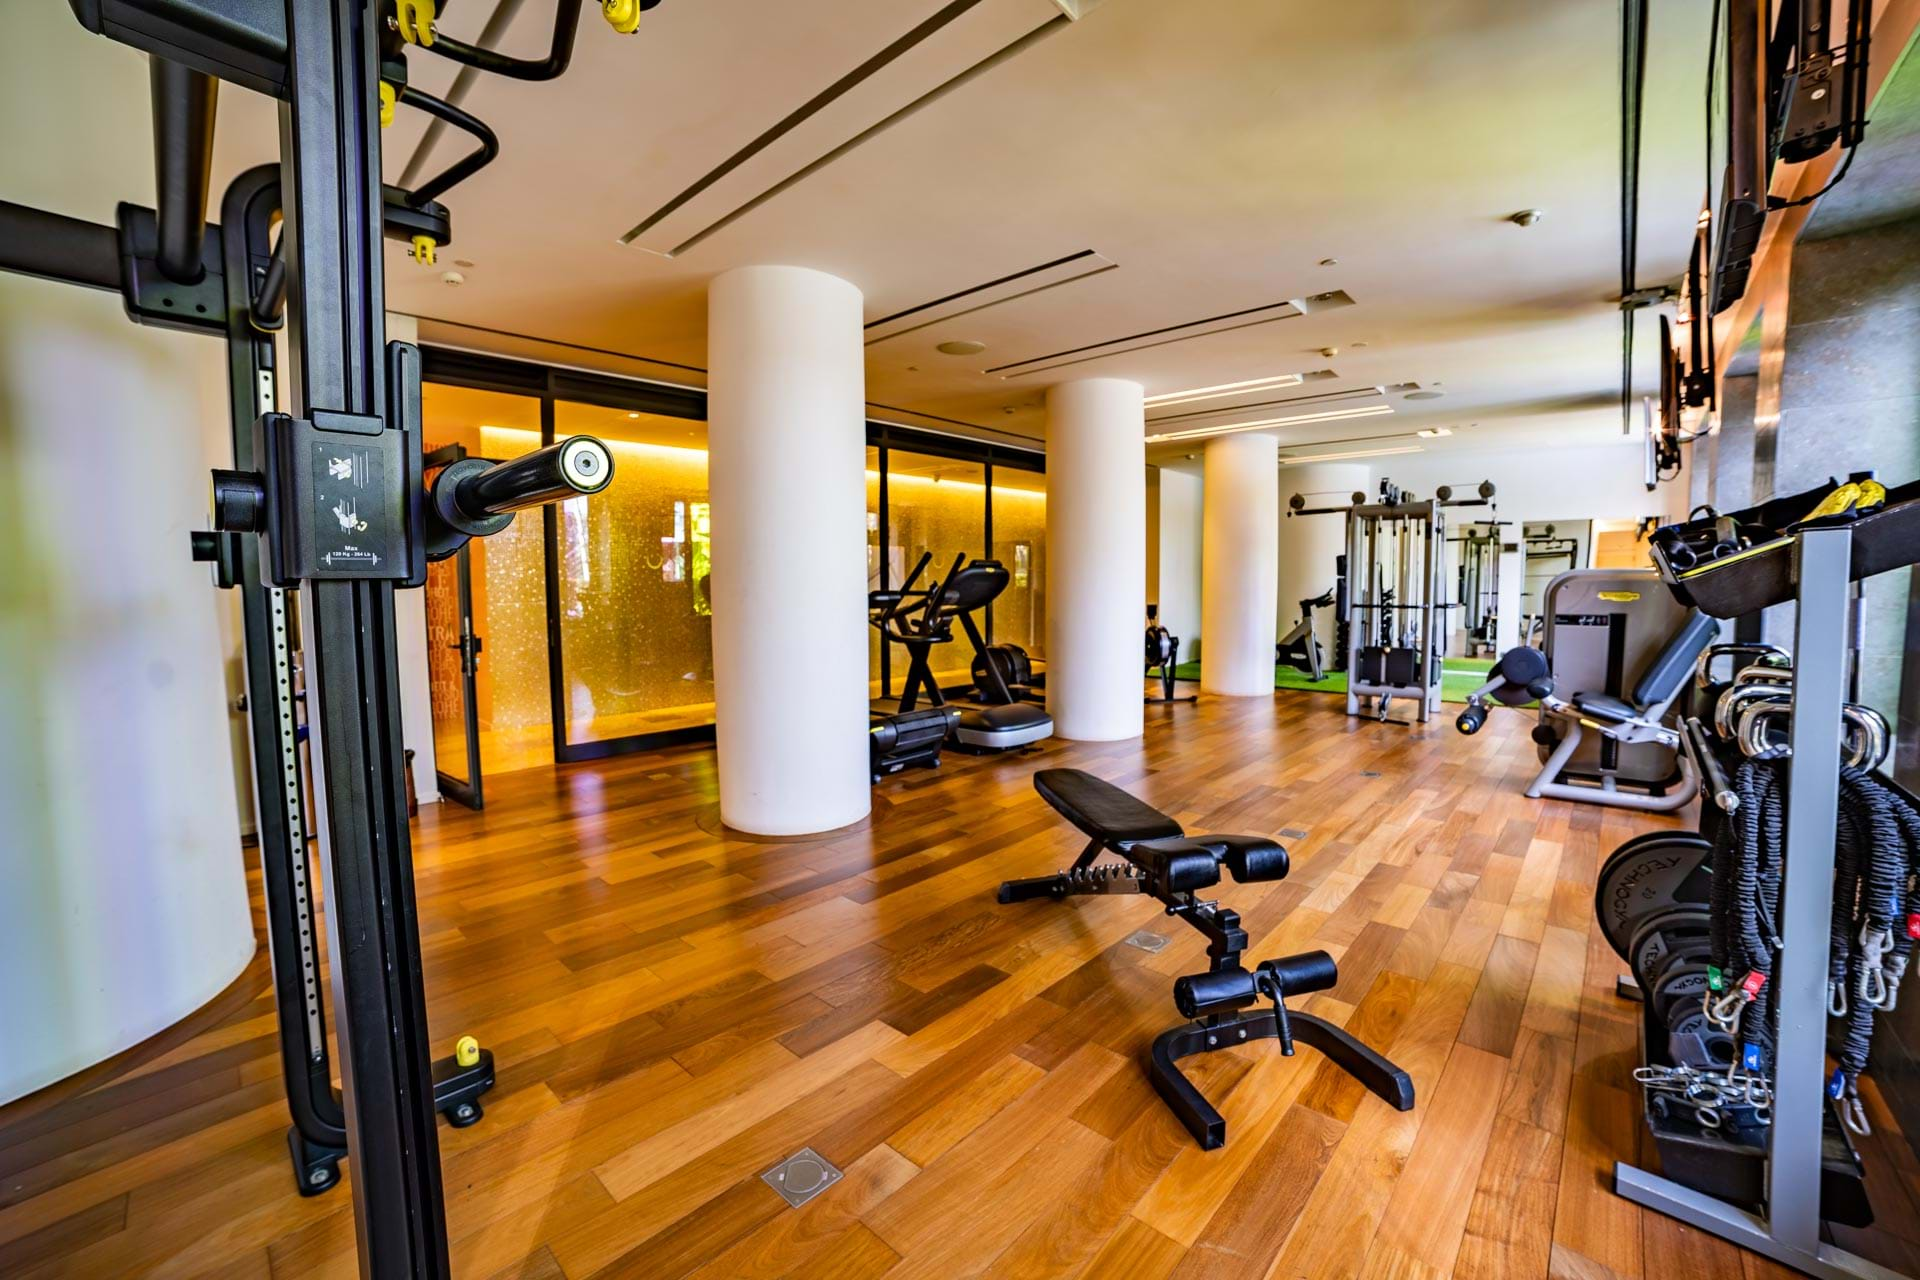 Bohemia-Hotel-Gran-Canaria-Wellness-and-Gim-06.jpg